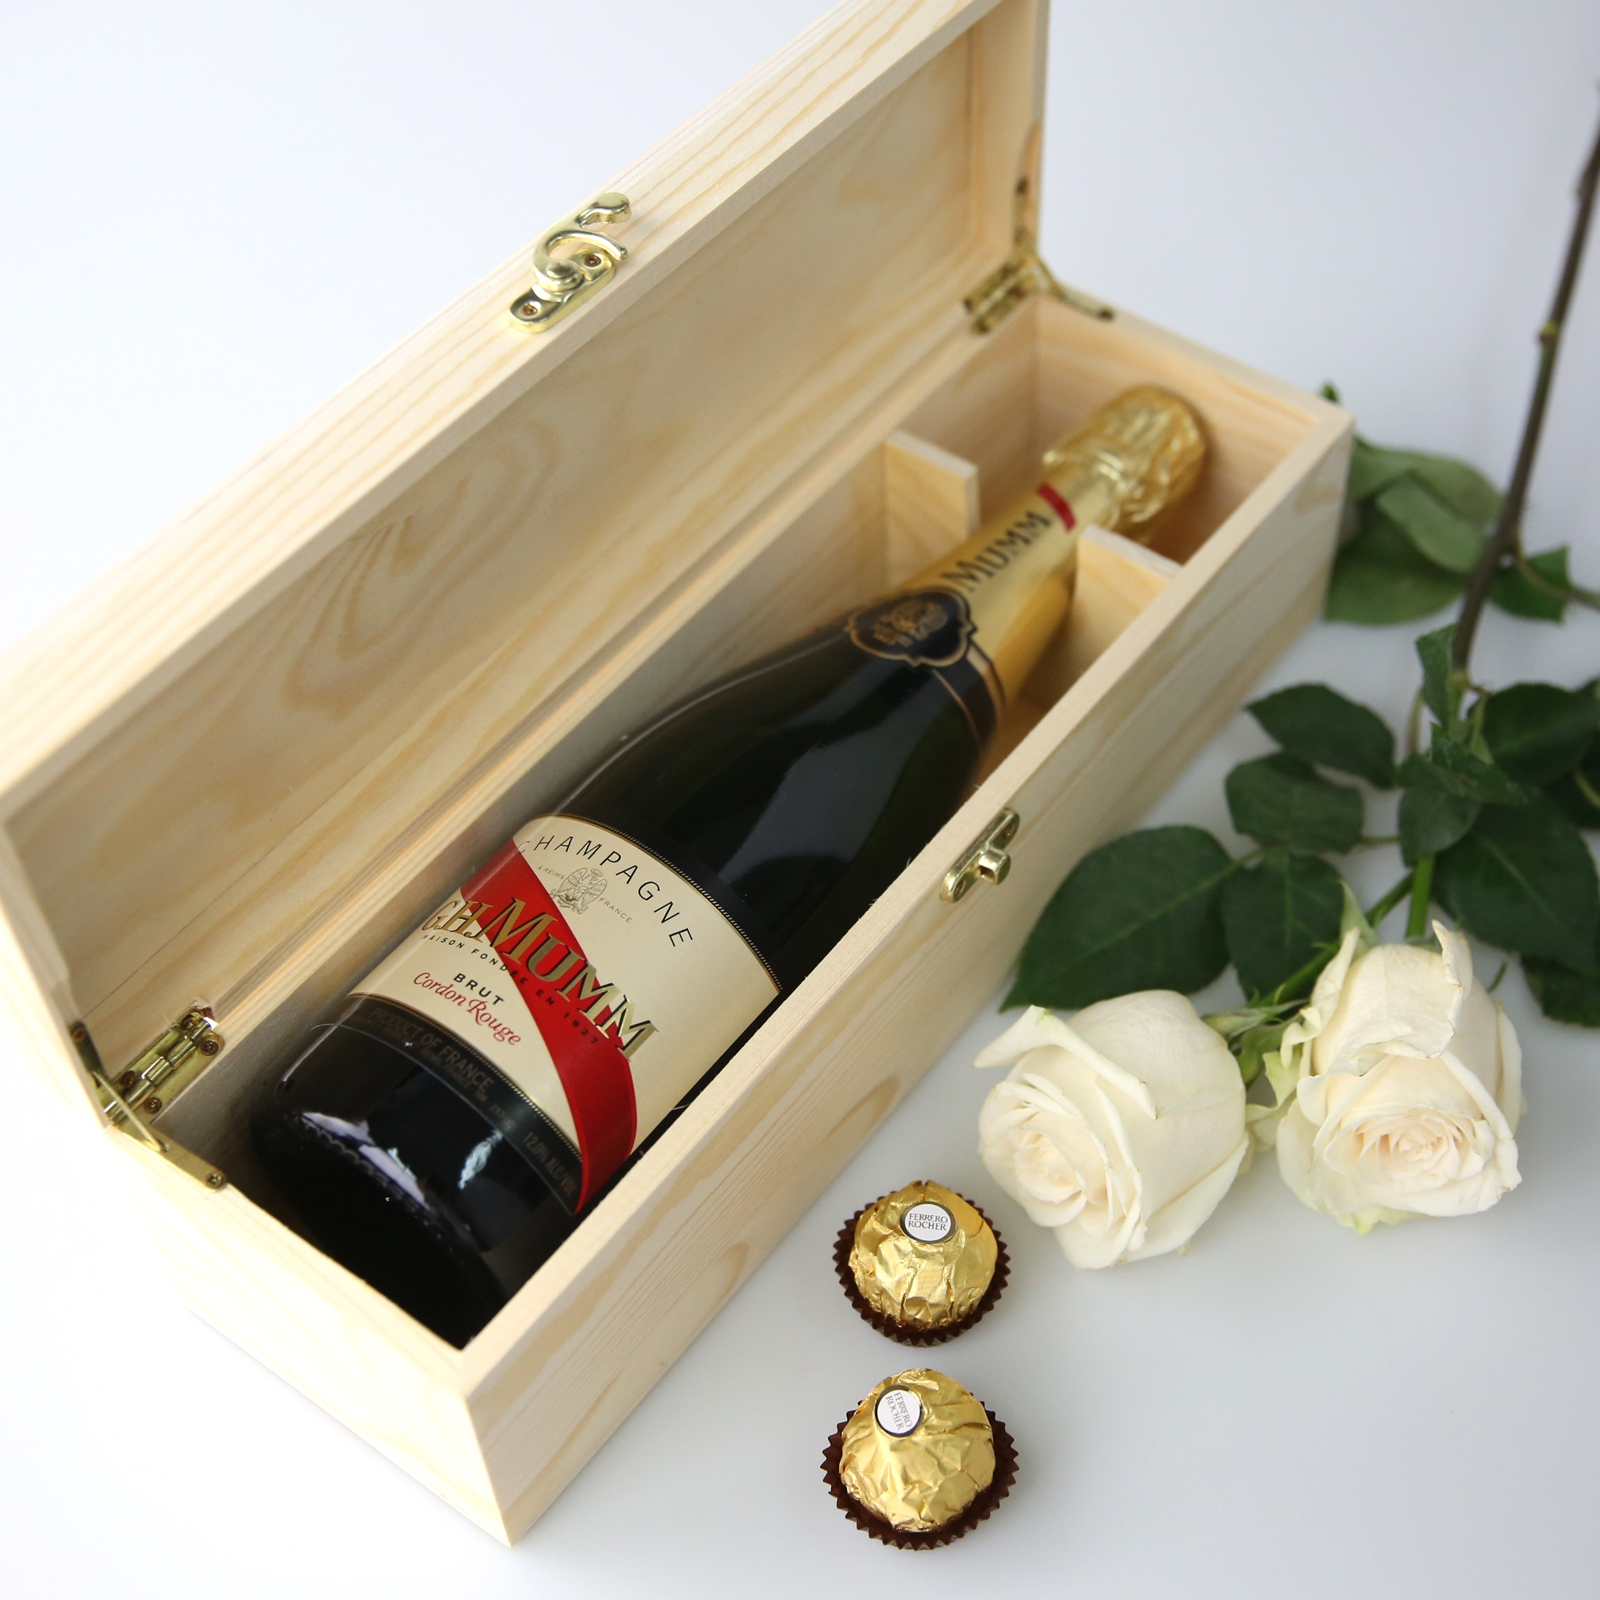 Gifting A Wine Bottle On An Occasion Is An Art